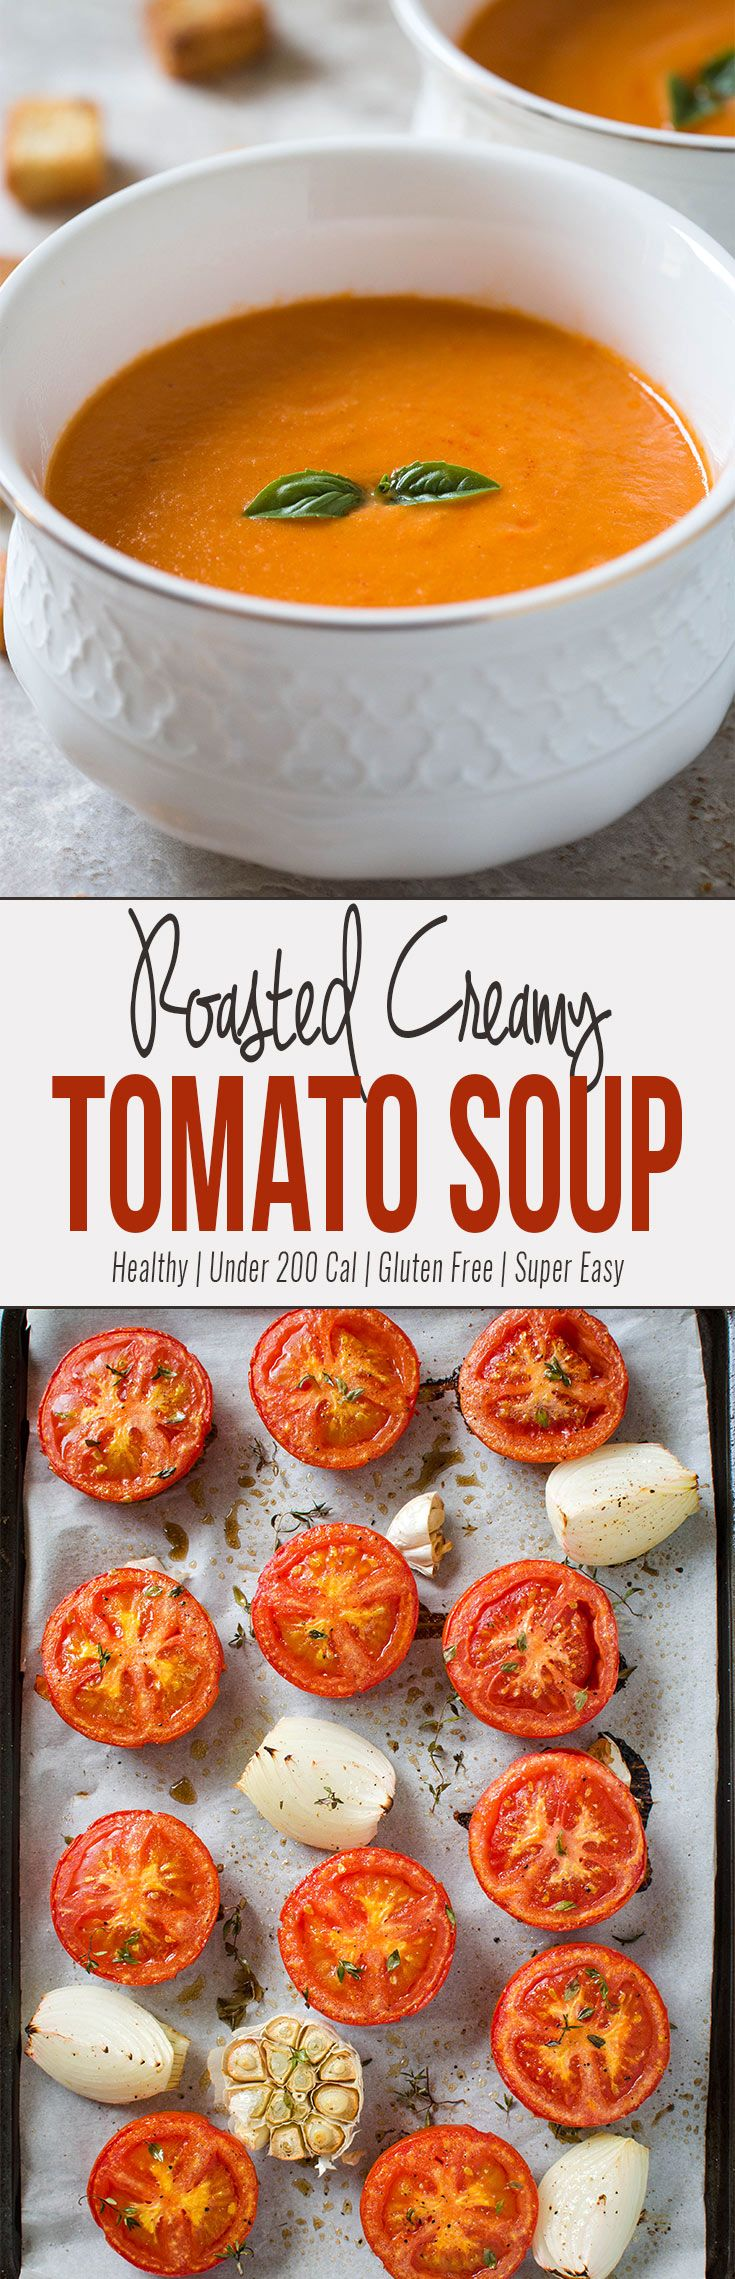 This easy roasted tomato soup involves very less preparation time. Doesn't require additional skills to make this delicious & healthy tomato soup & no need to babysit this one when making. #healthyrecipe #tomatosoup